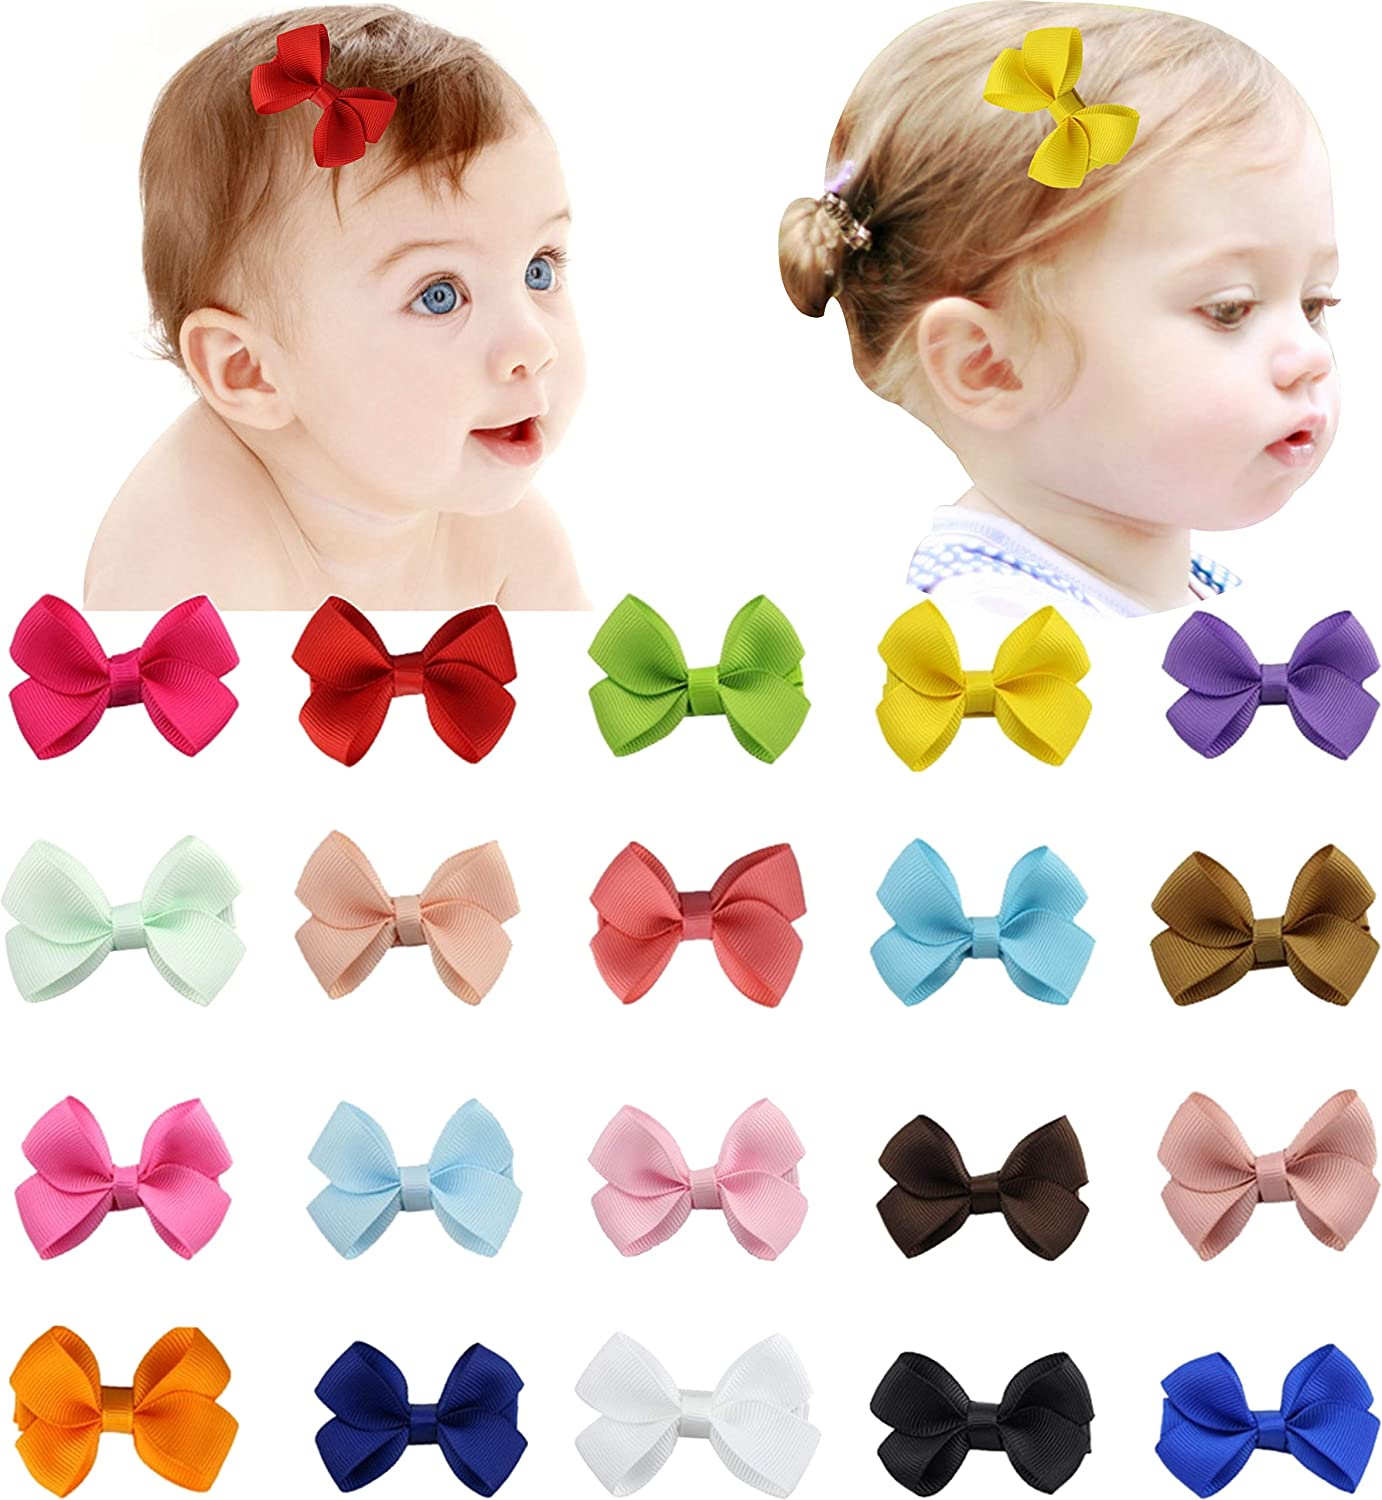 20pcs 2 Inch Tiny Hair Bows Clips Fully Lined for Baby Girls Fine Hair Infants Mini Hair Clips Bow Girlclips 81ntS4CdrlL